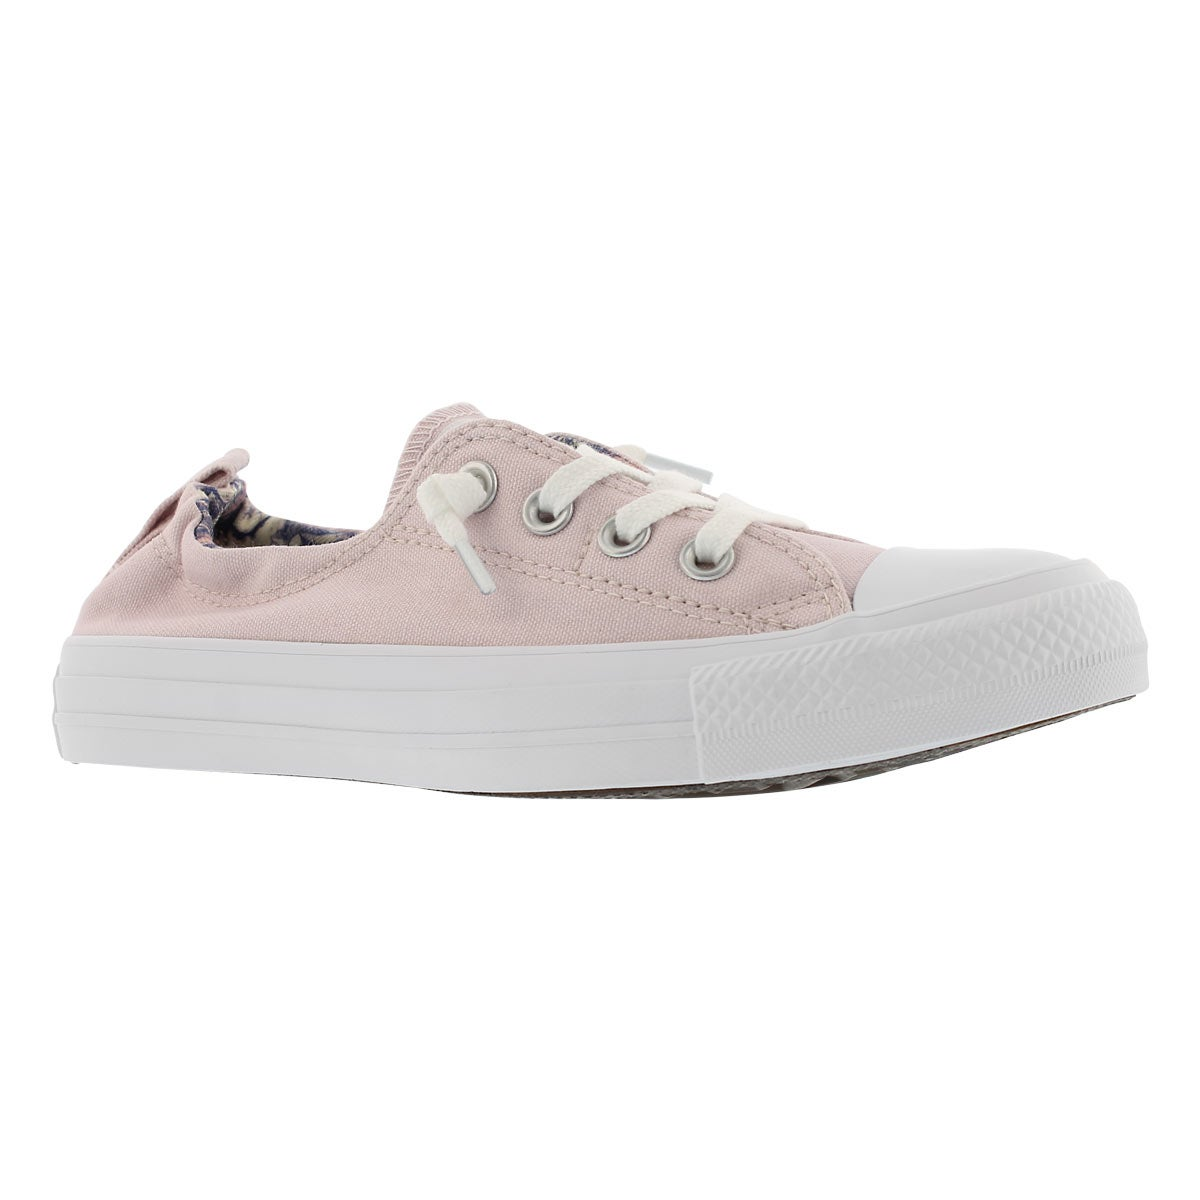 Women's CT ALL STAR SHORELINE barely rose sneakers